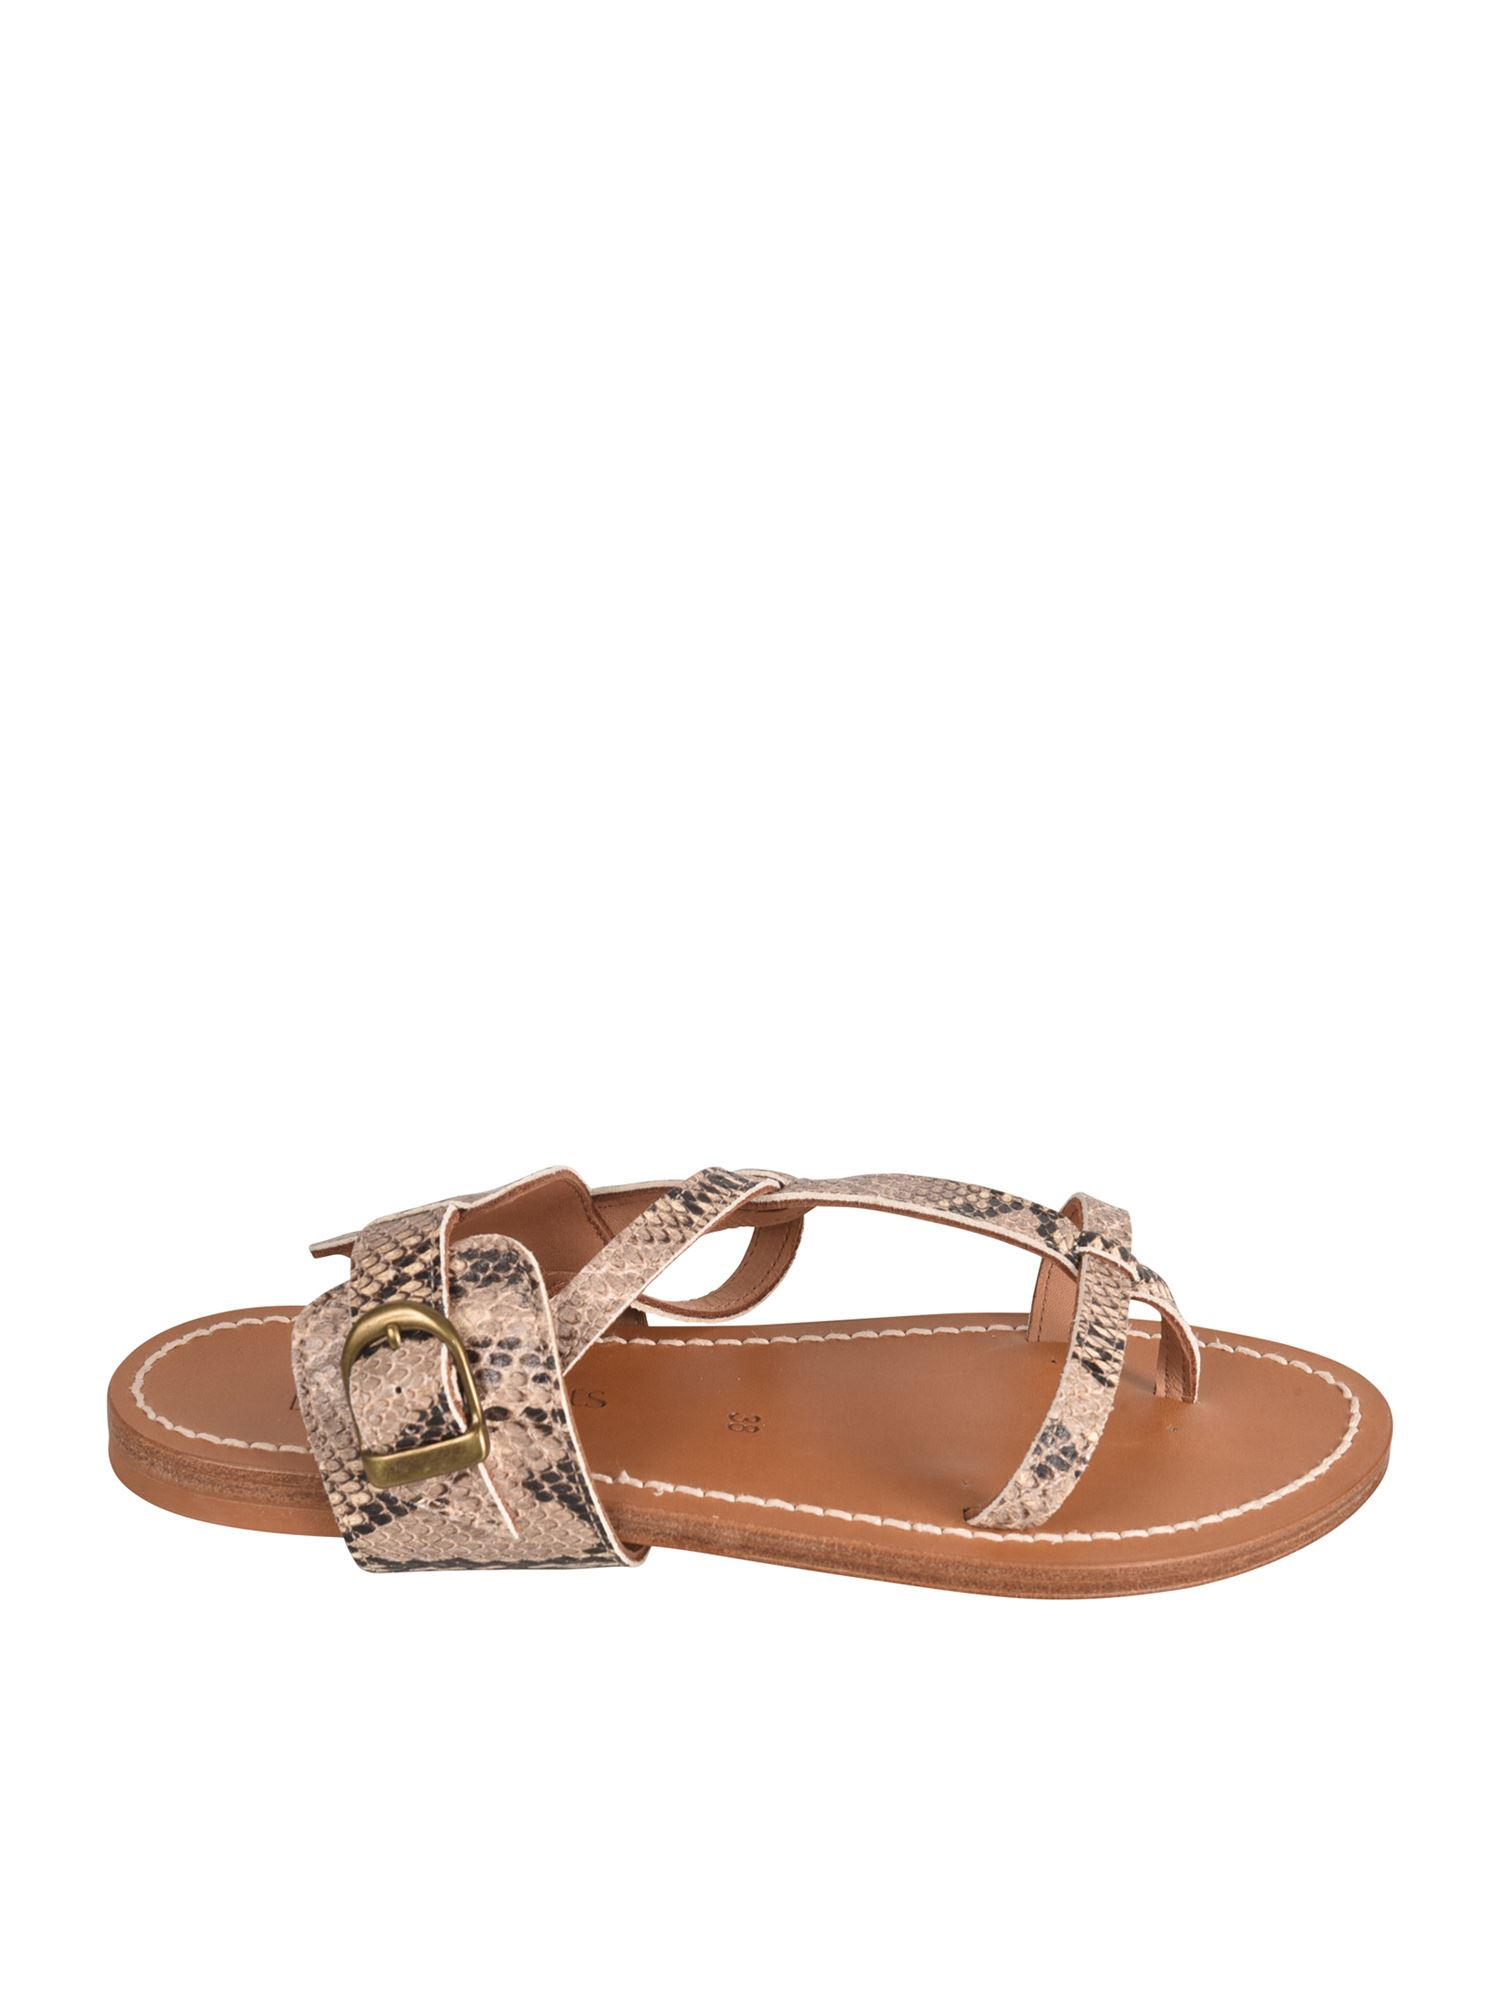 K.jacques CARAVELLE REPTILE EFFECT SANDALS IN DUNA COLOR